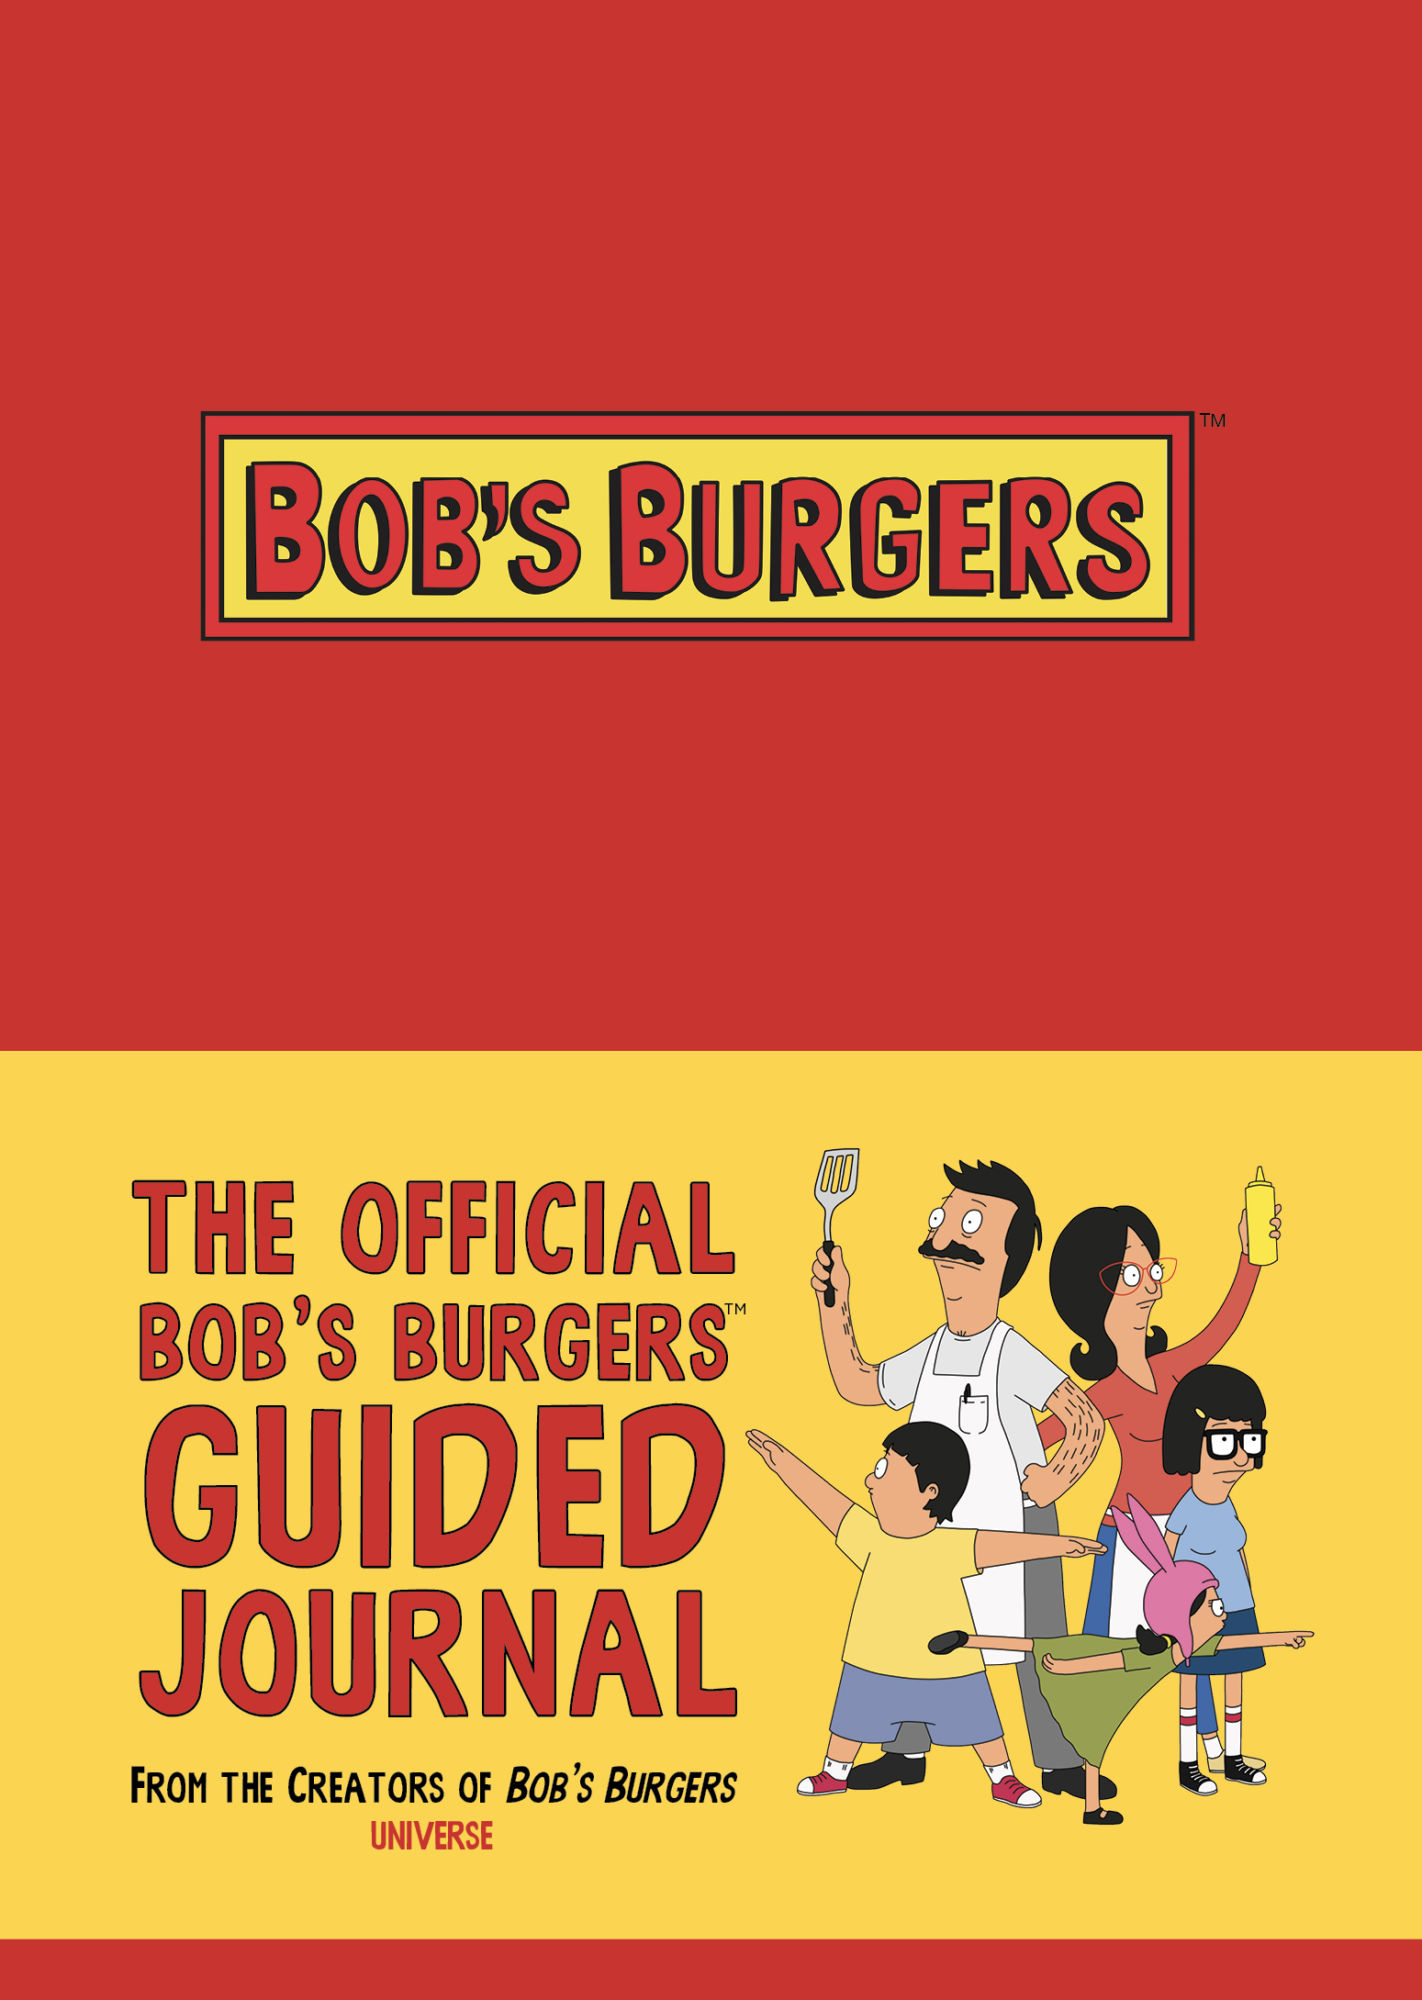 Bob's Burgers Guided Journal (Rizzoli)